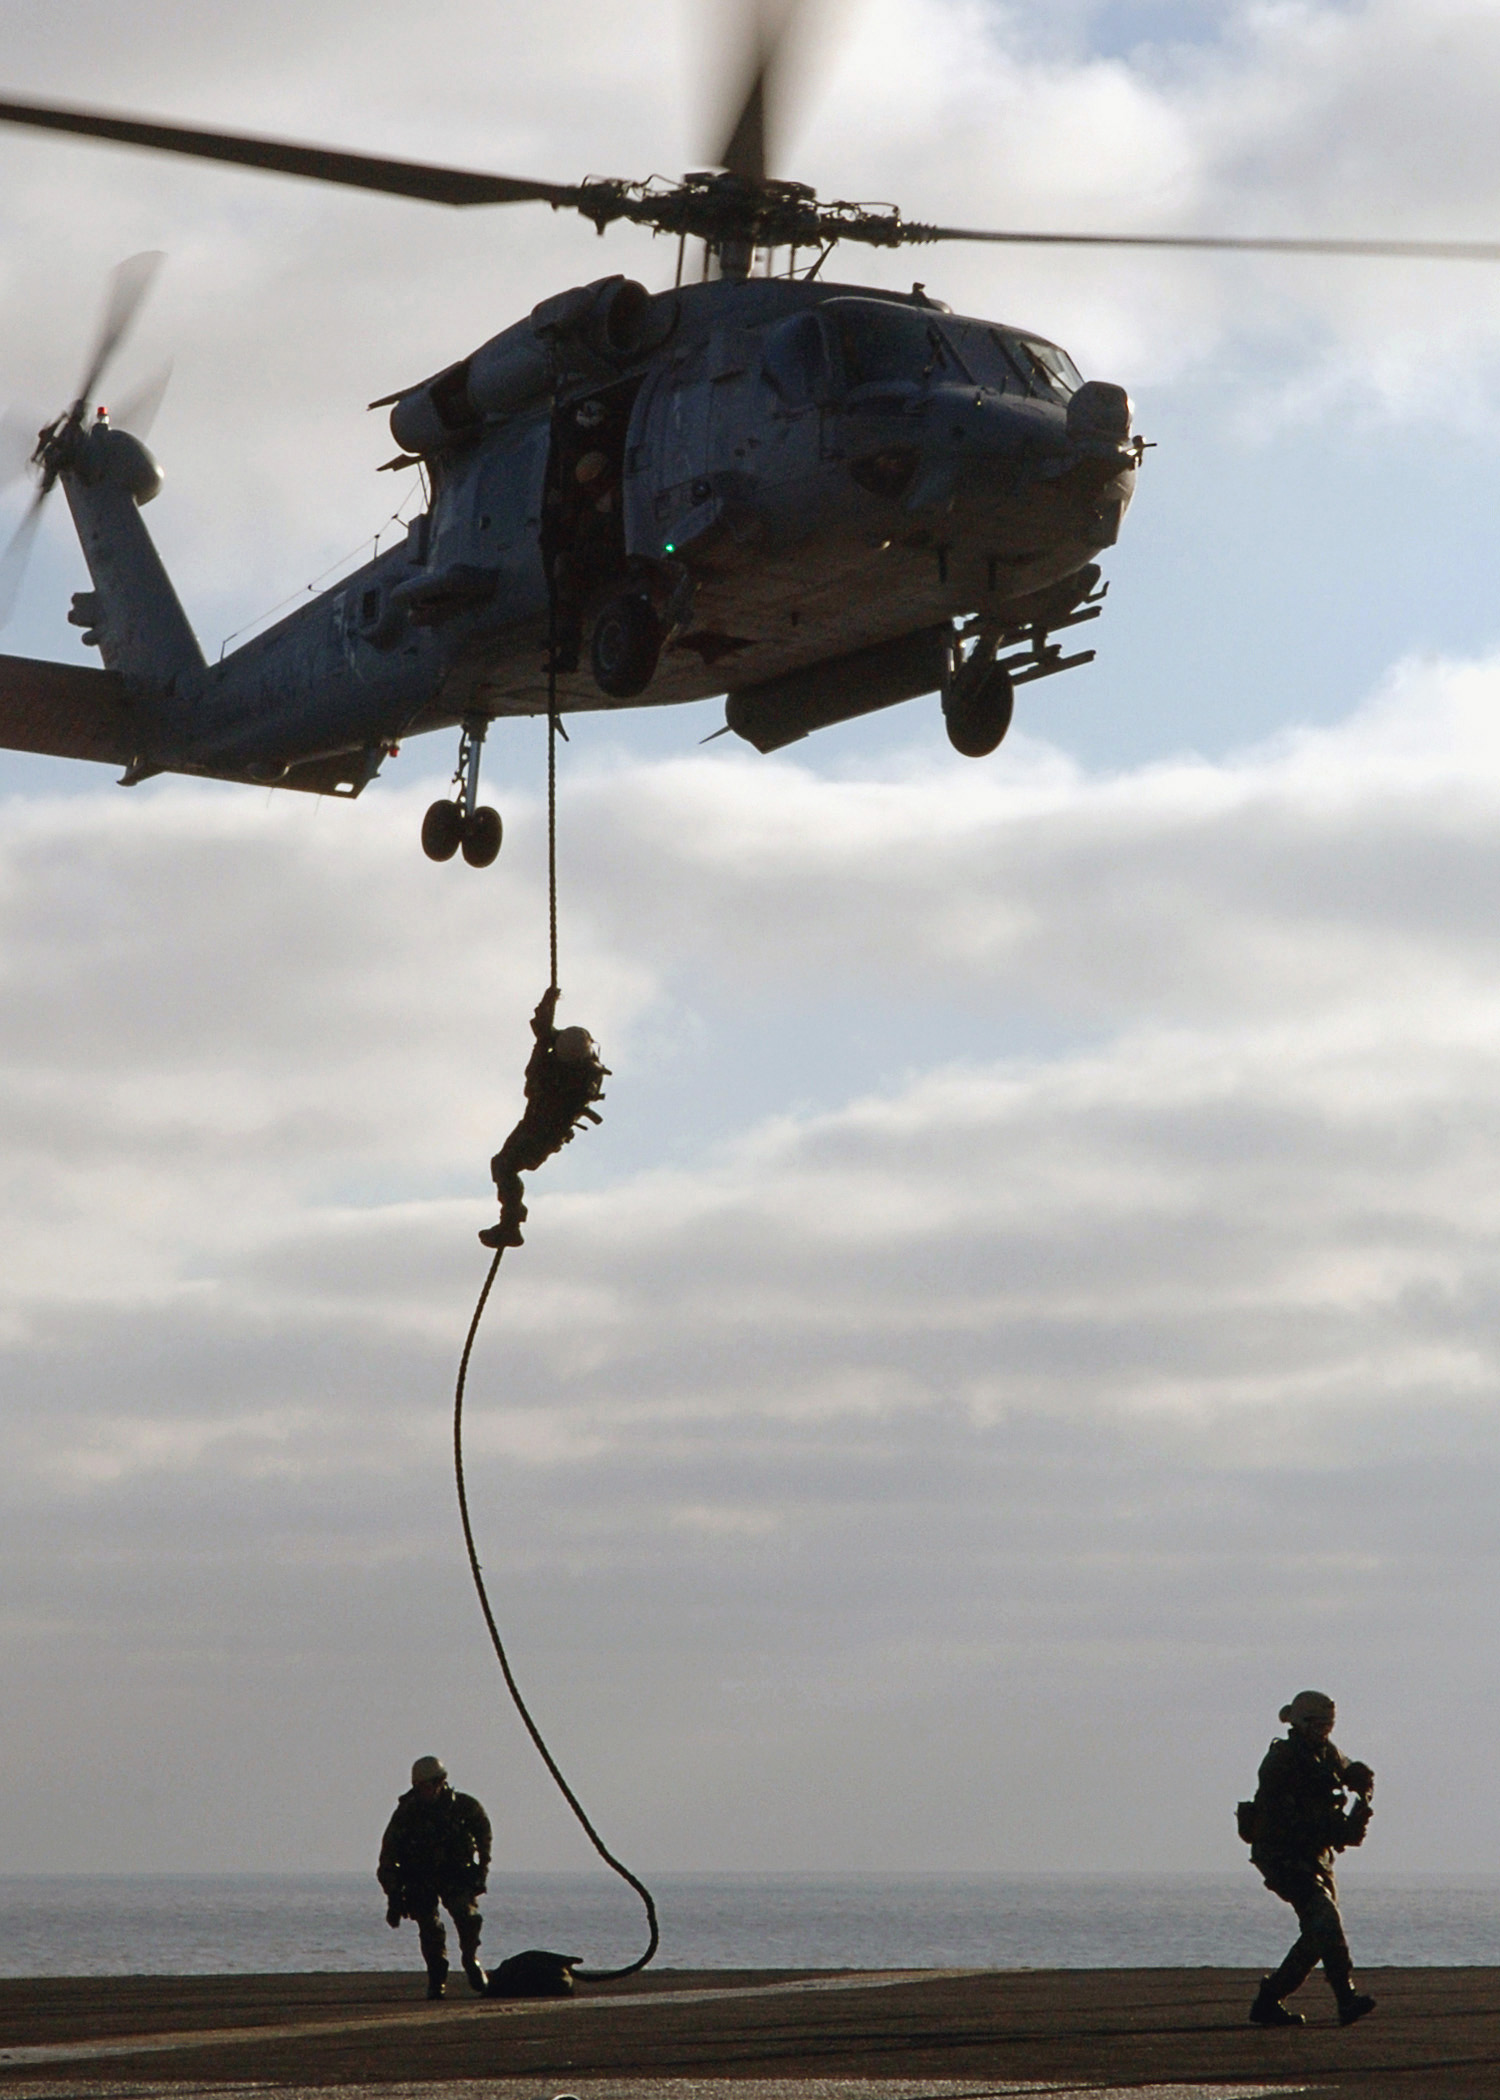 US Navy (USN) Sailors assigned to Explosive Ordnance Disposal, Mobile Unit 6 (EODMU-6), Detachment 14 (DET-14), fast ropes from a hovering USN SH-60F Sea Hawk helicopter from Helicopter Anti-Submarine Squadron 11 (HS-11), onto the flight deck of the USN Aircraft Carrier, USS ENTERPRISE (CVN 65). The ENTERPRISE and embarked Carrier Air Wing 1 (CVW-1) are currently underway on a scheduled six-month deployment in support of the global war on terrorism